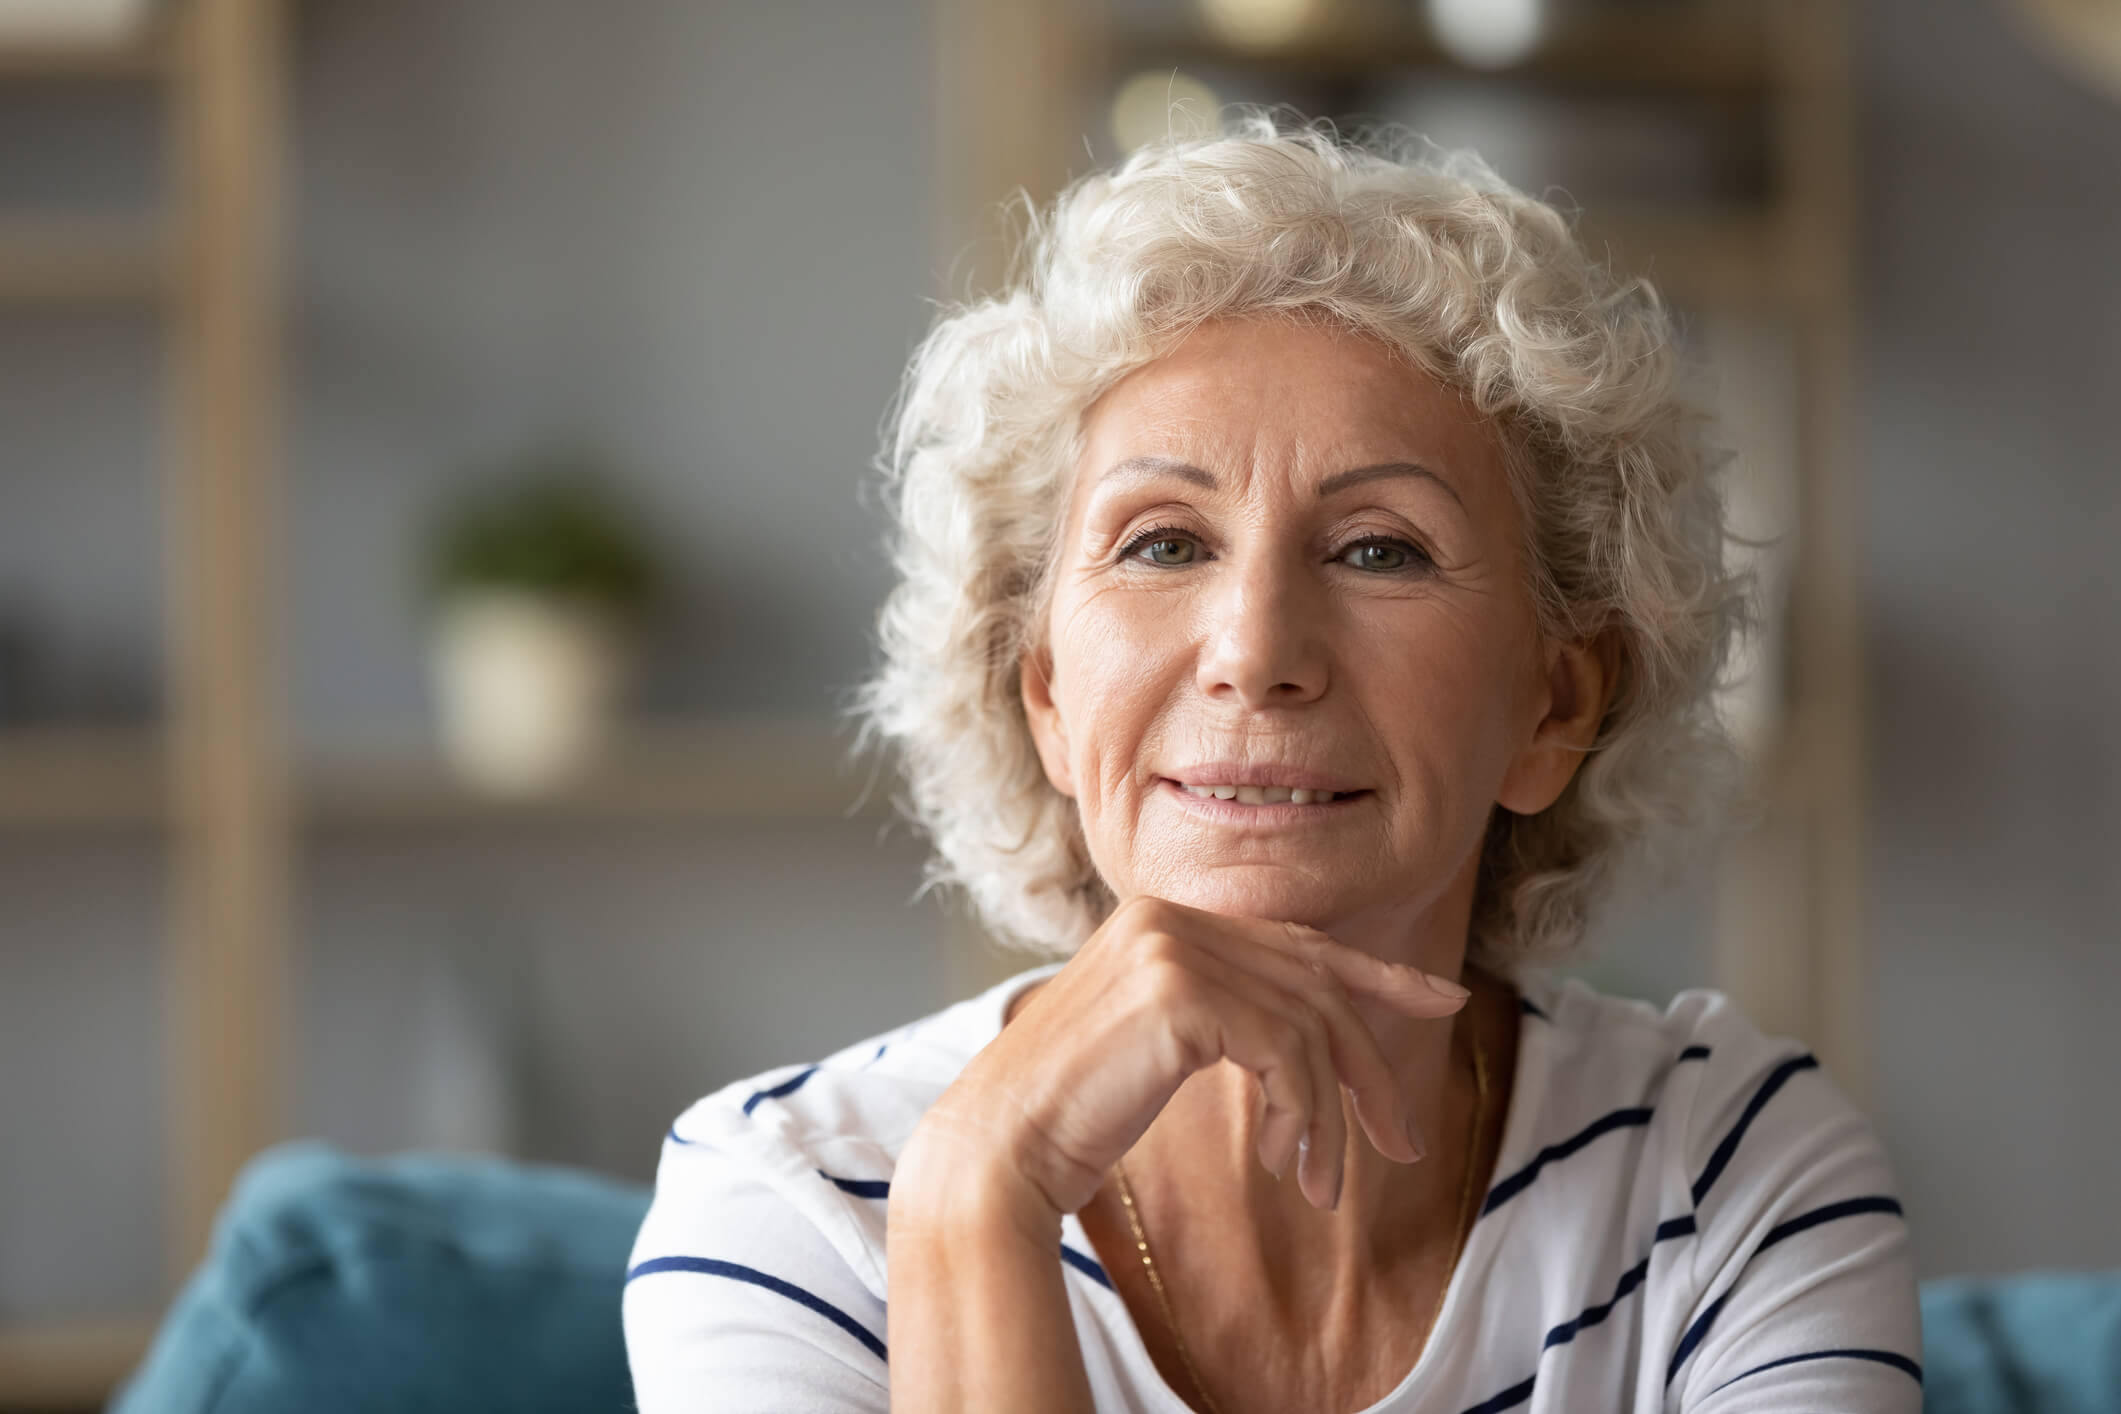 What Do We Mean by a Continuum of Care for Seniors?